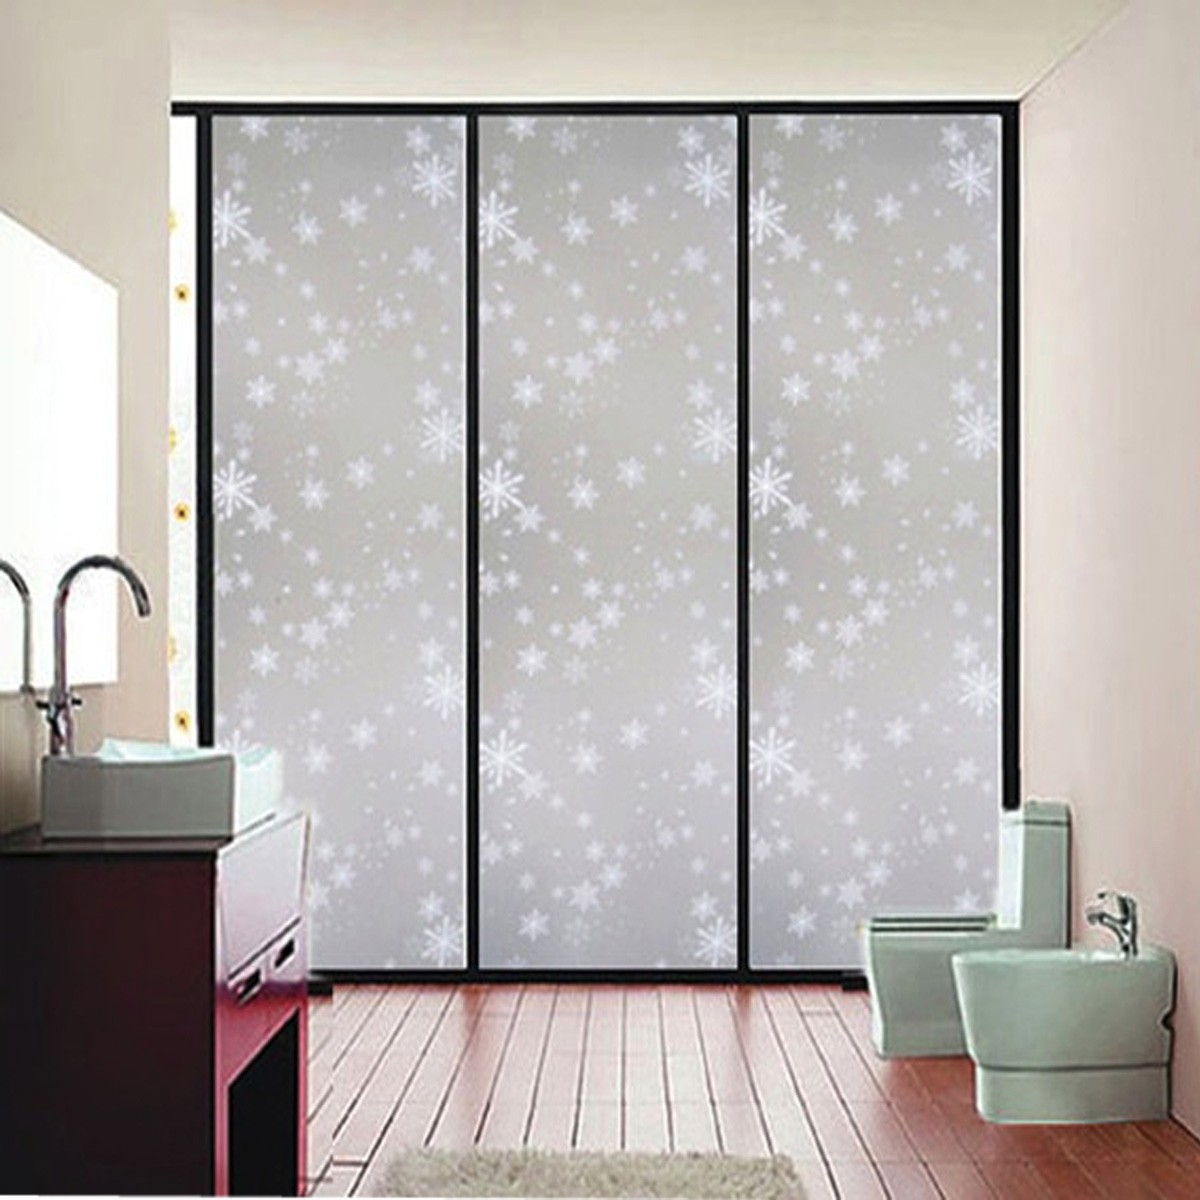 home window privacy film commercial 1pcs 1772 privacy window film